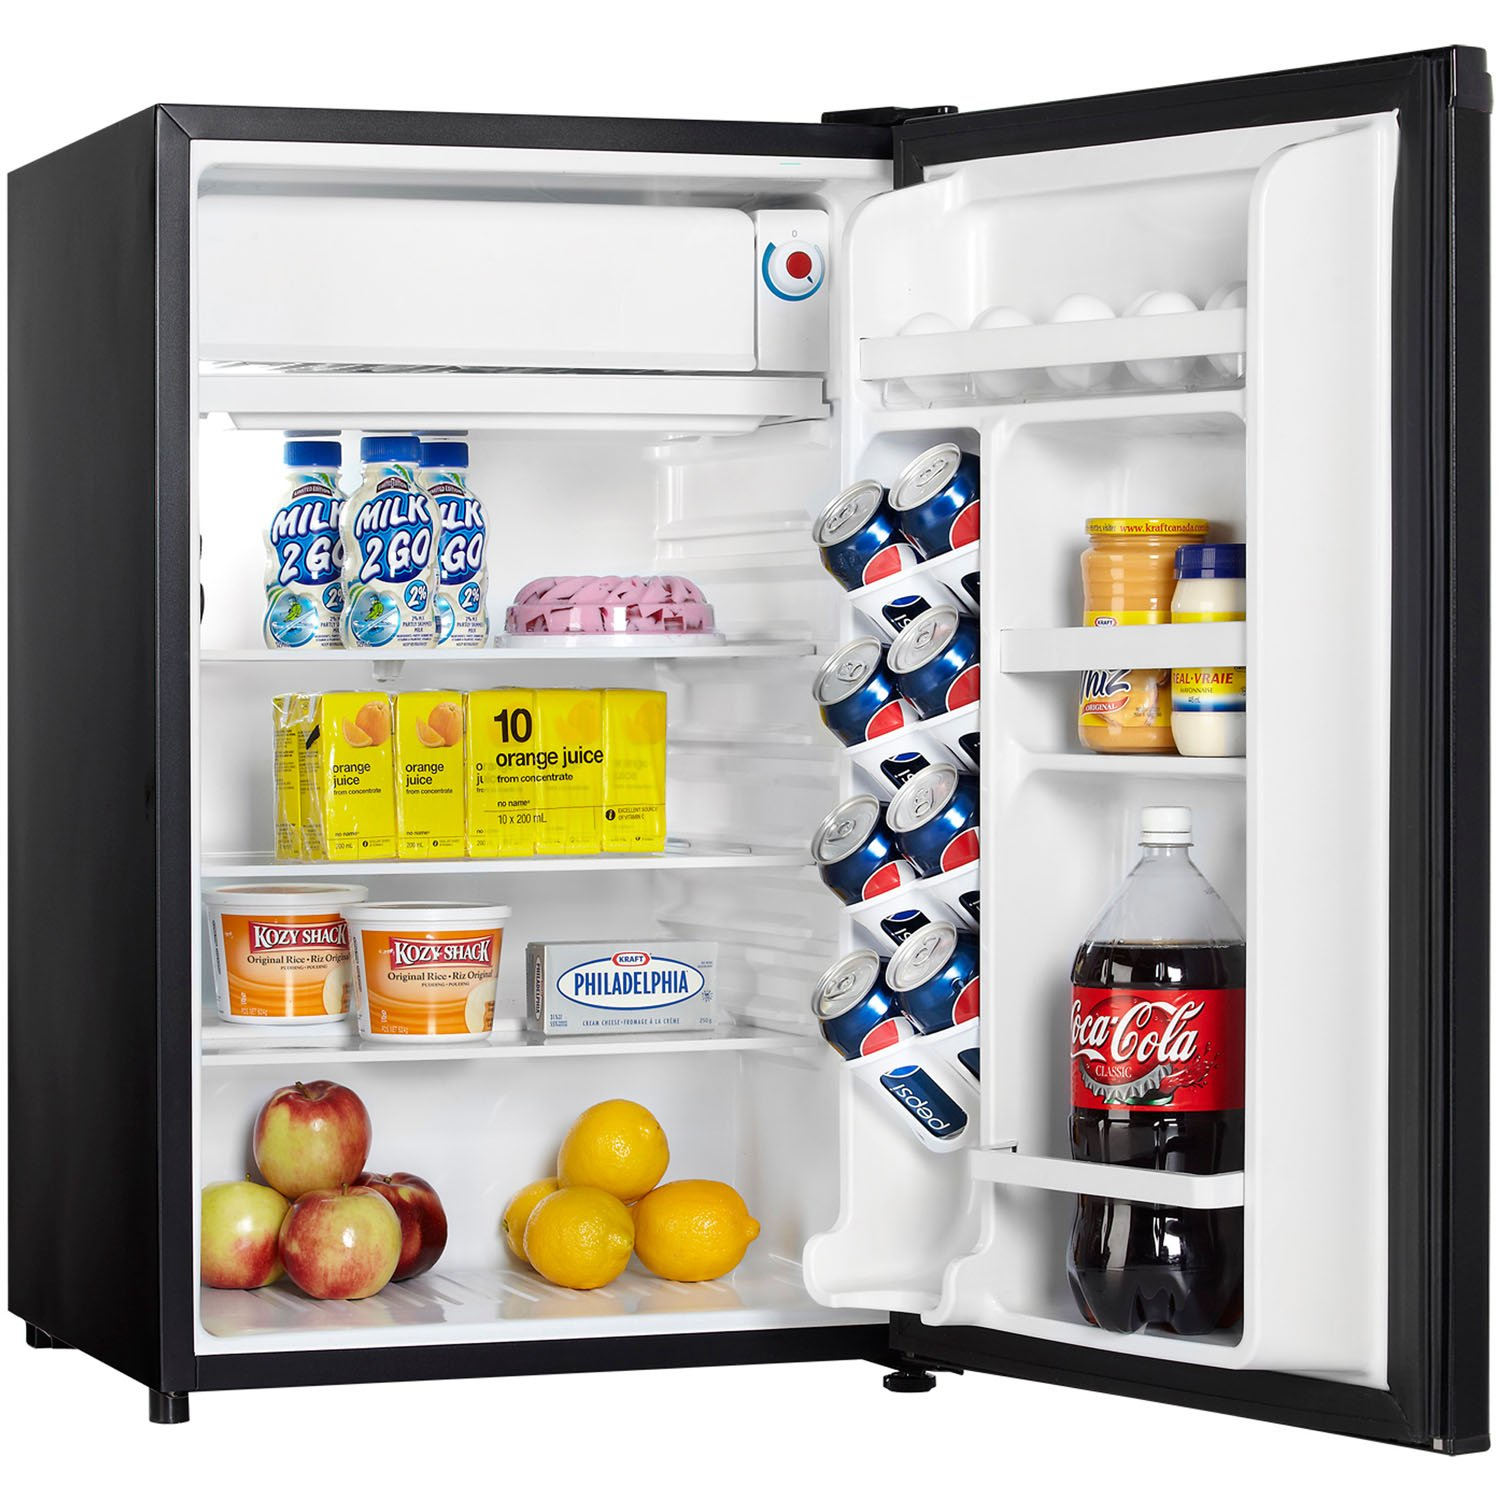 refrigerator 10 cu ft. danby designer compact refrigerator, 4.4 cubic feet, black: amazon.ca: home \u0026 kitchen refrigerator 10 cu ft